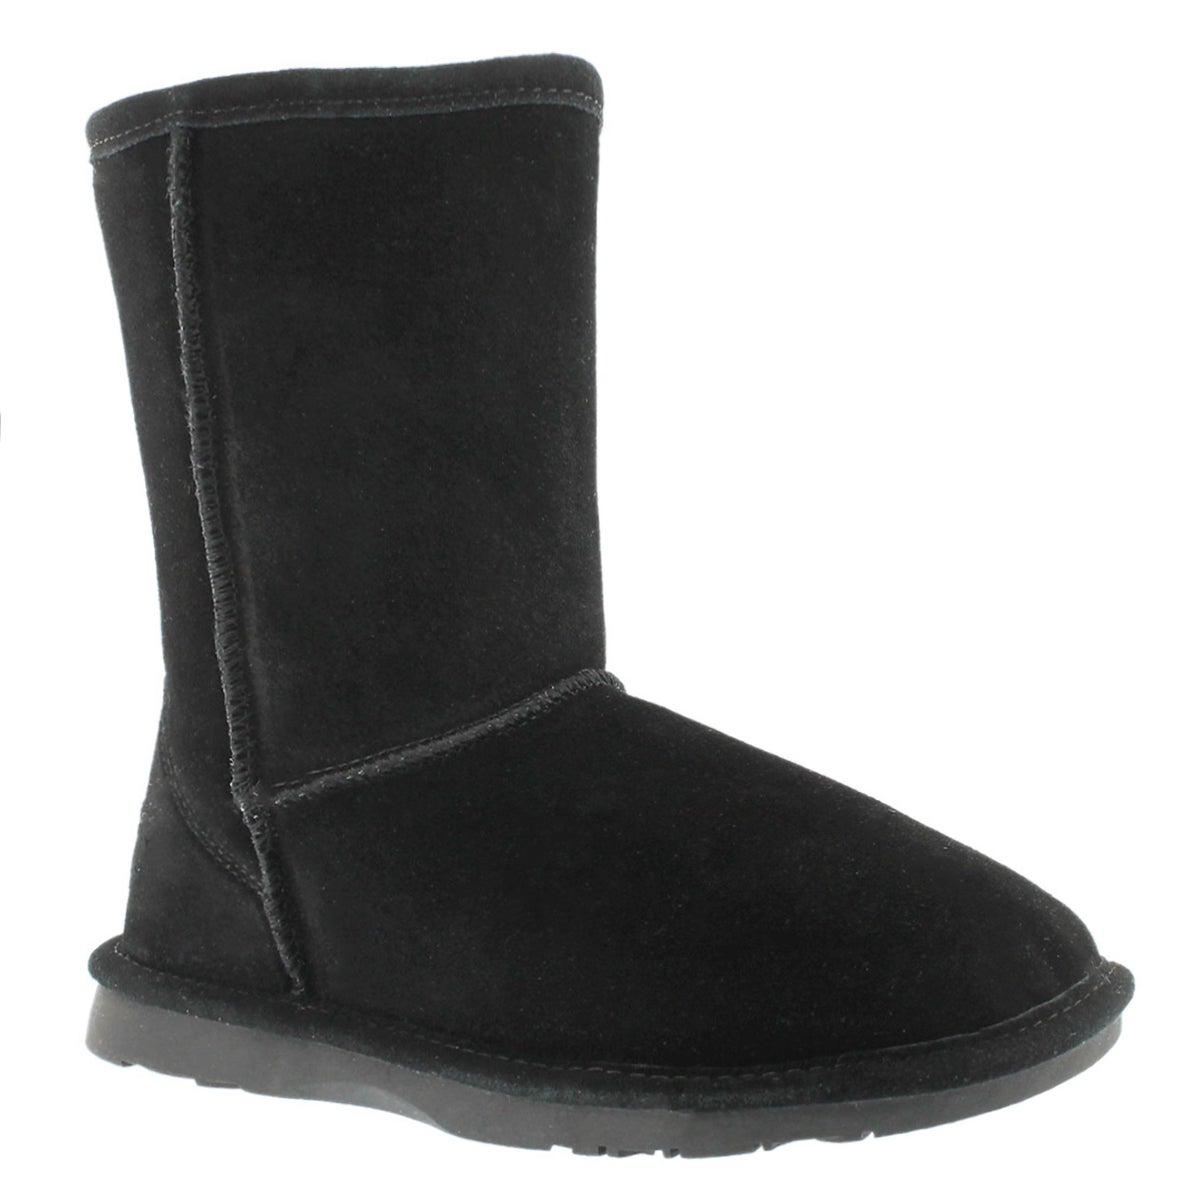 Lds Smocs 4 black mid suede boot